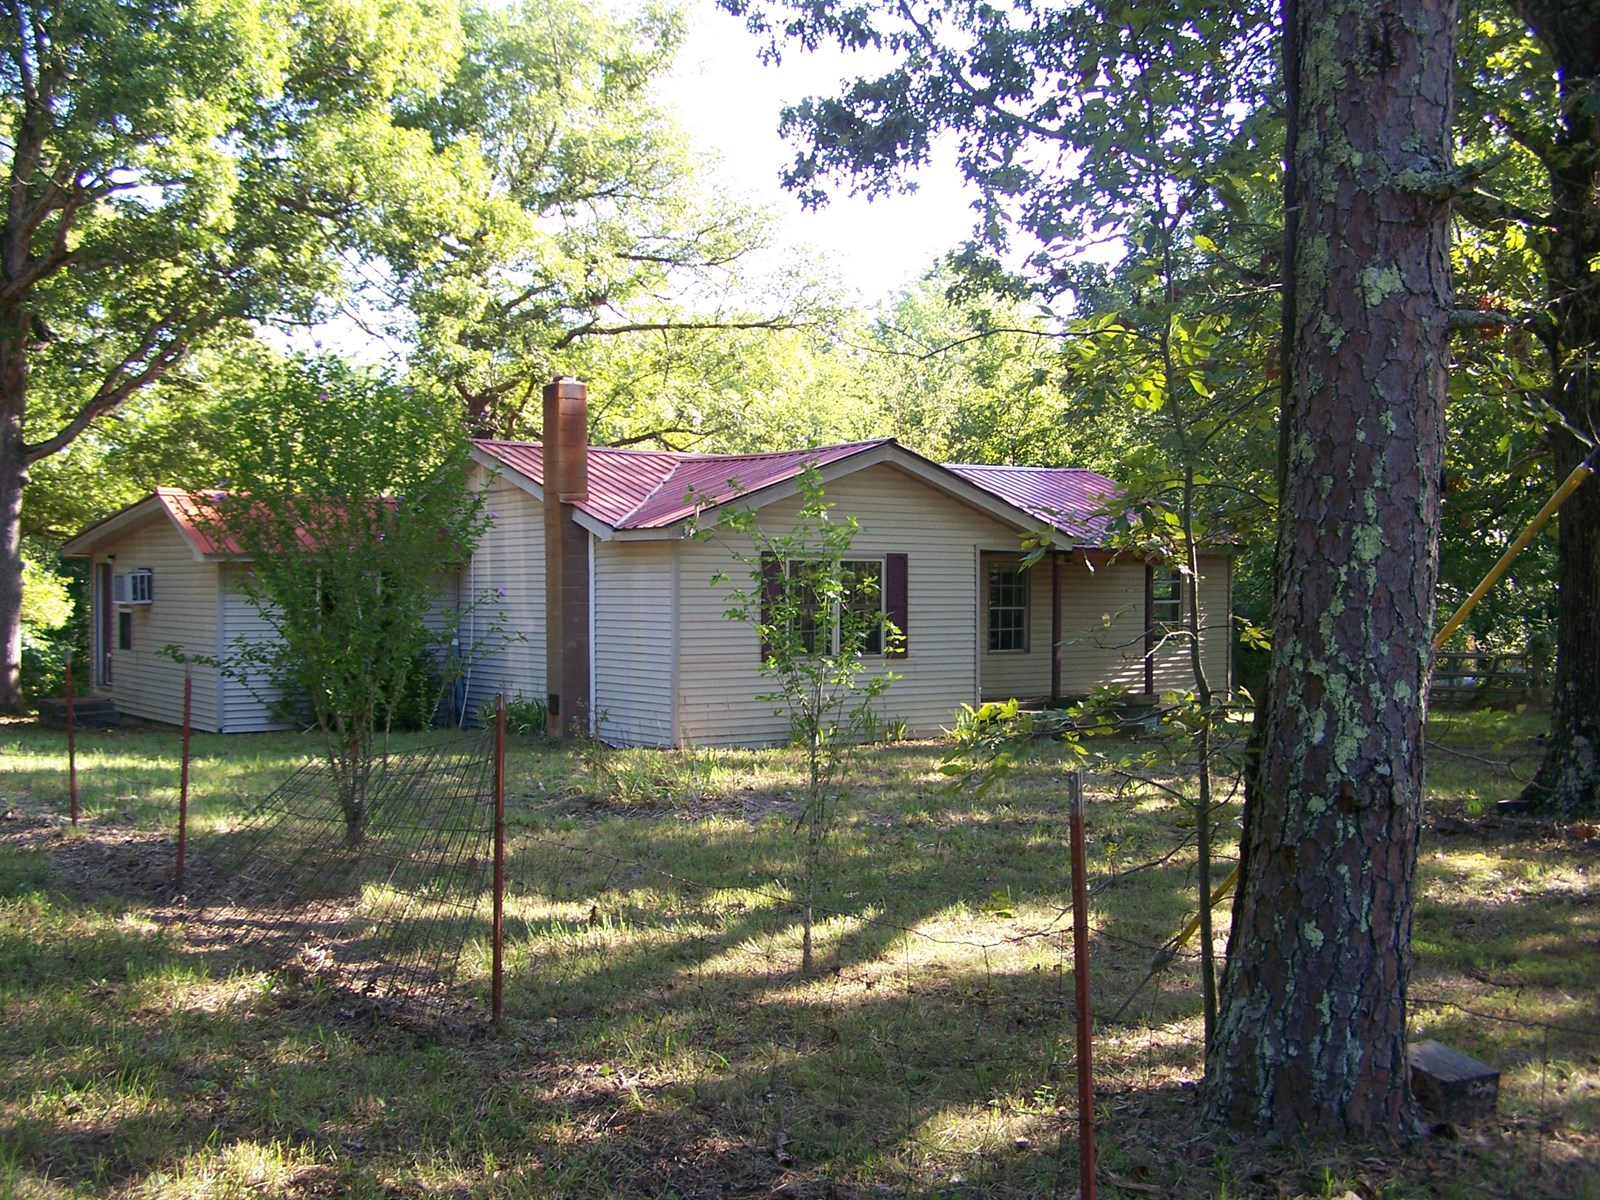 AR Country Home on 1.47 Acres w/Highway Frontage For Sale